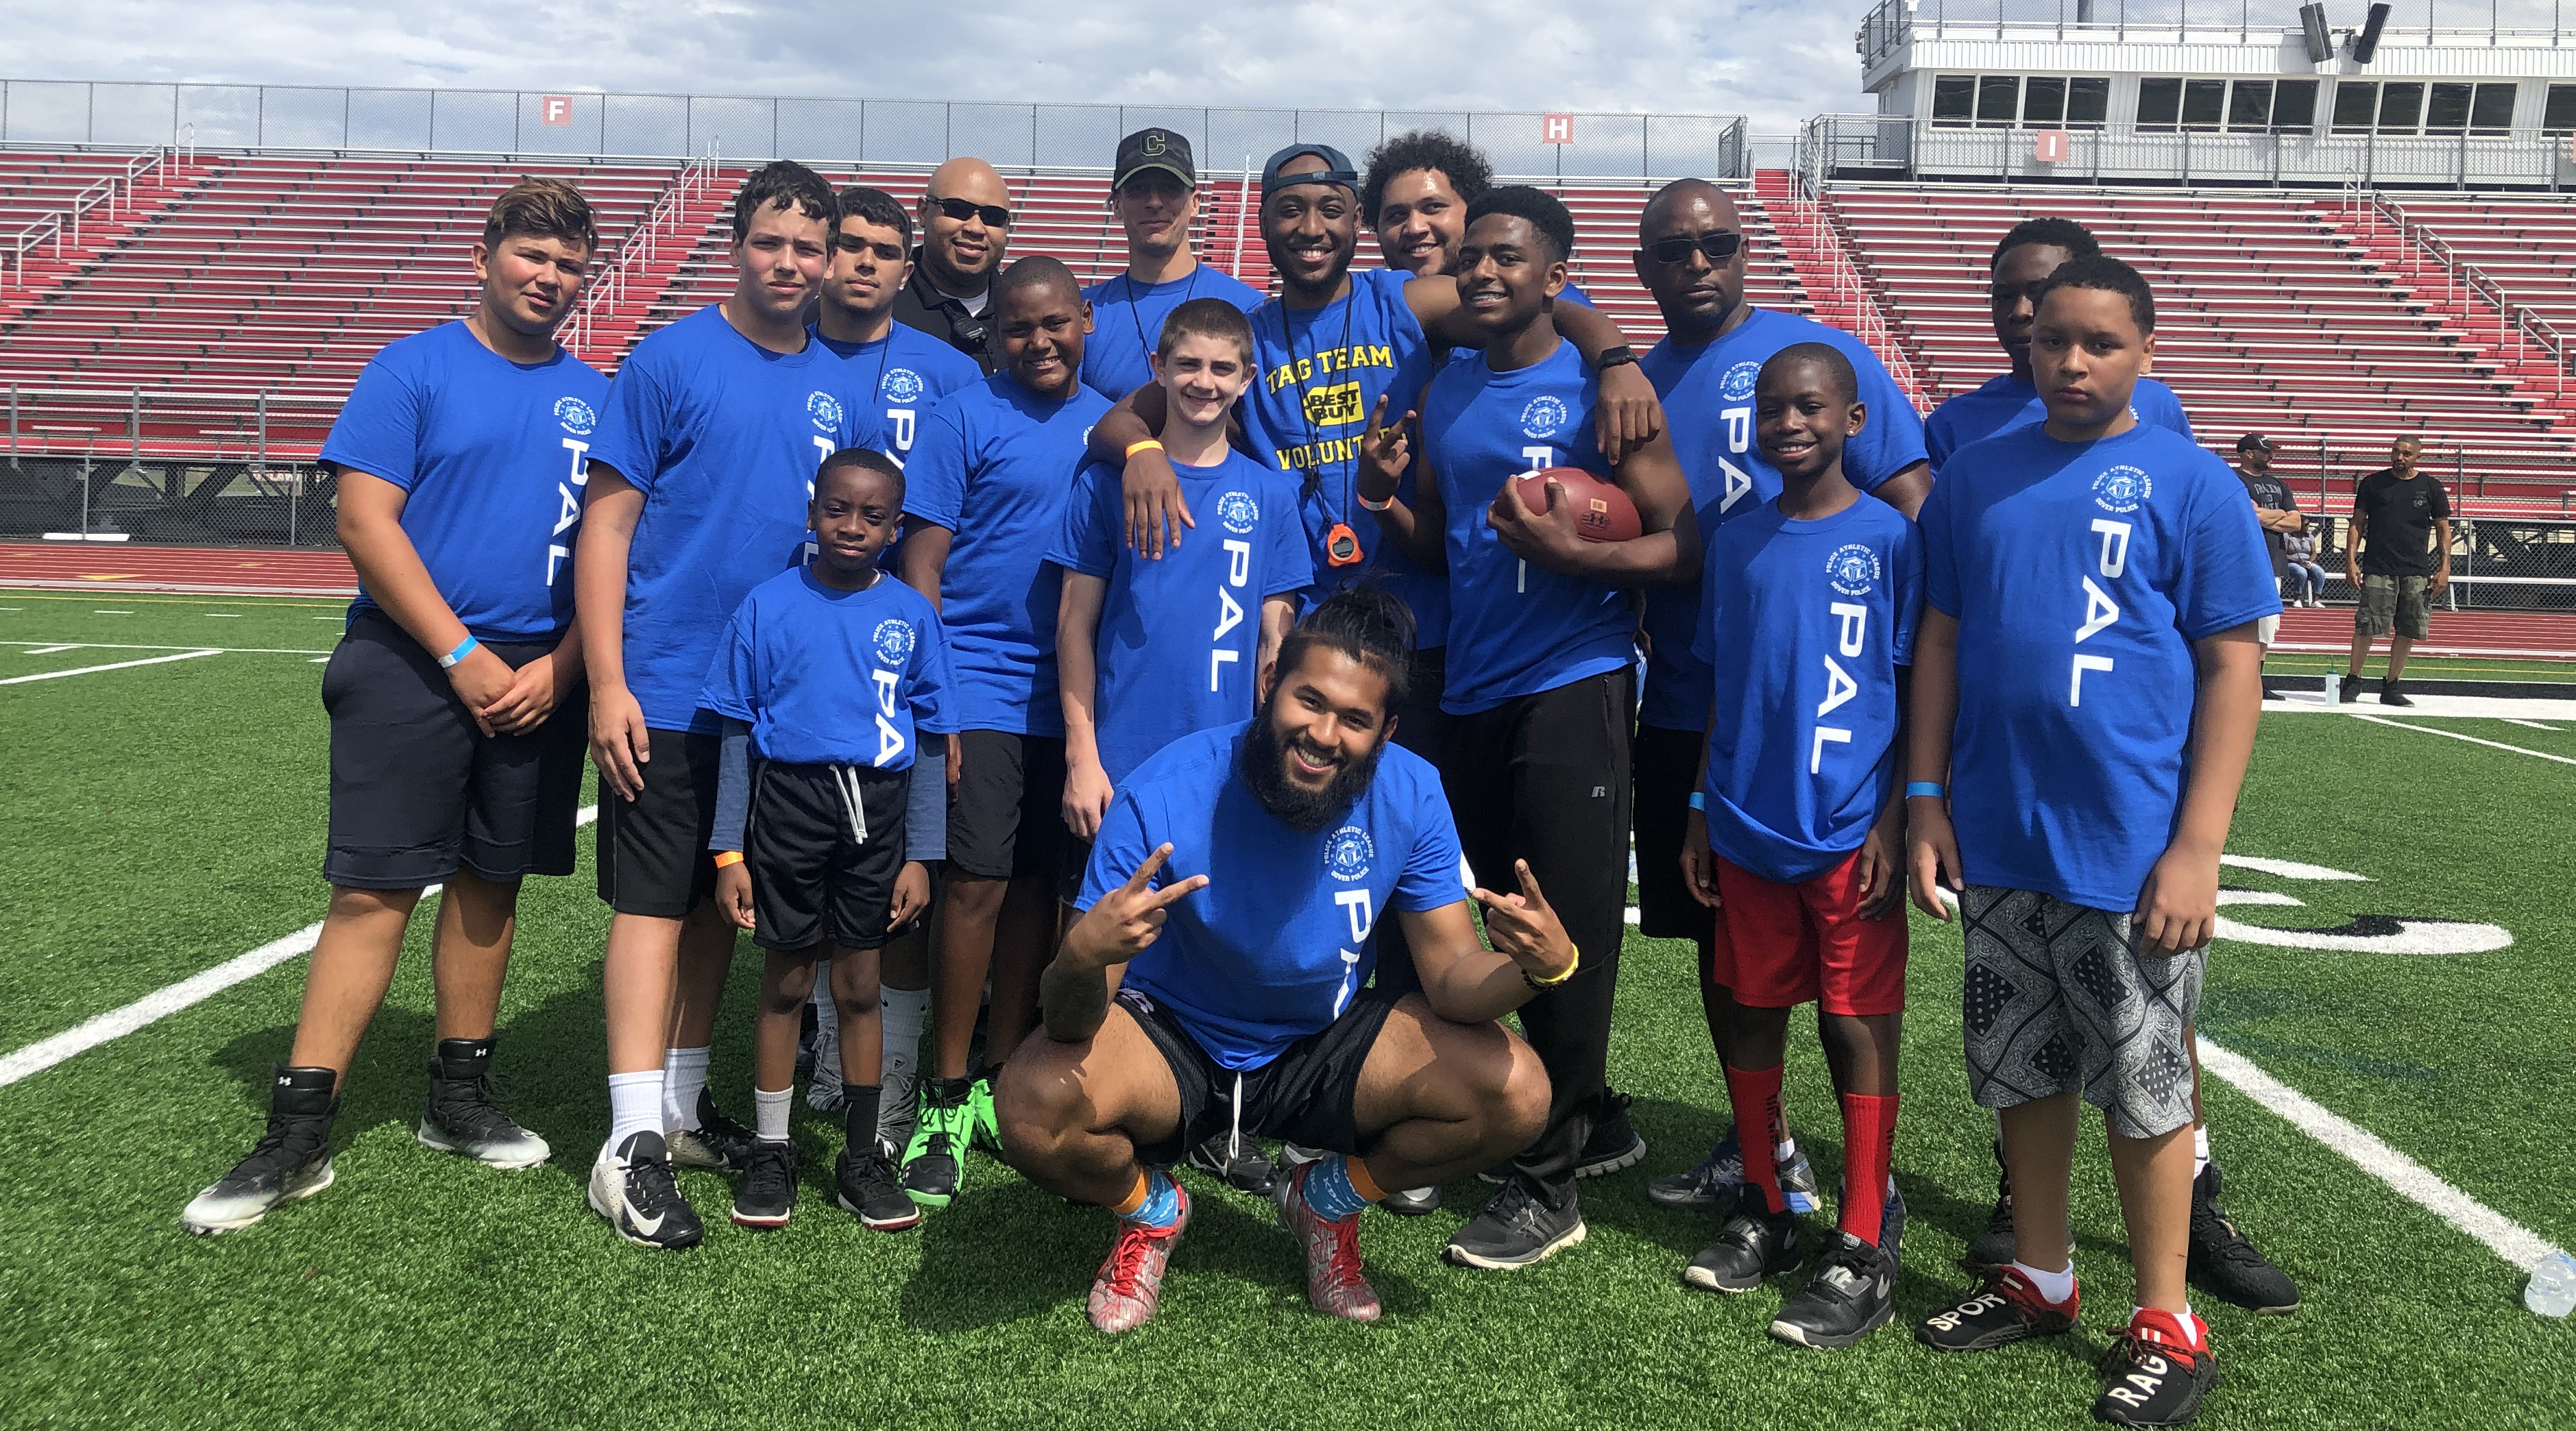 Police officers from Delaware State University and the Dover Police Athletic League came together for the 2nd Annual Youth Football Combine held at Alumni Stadium.